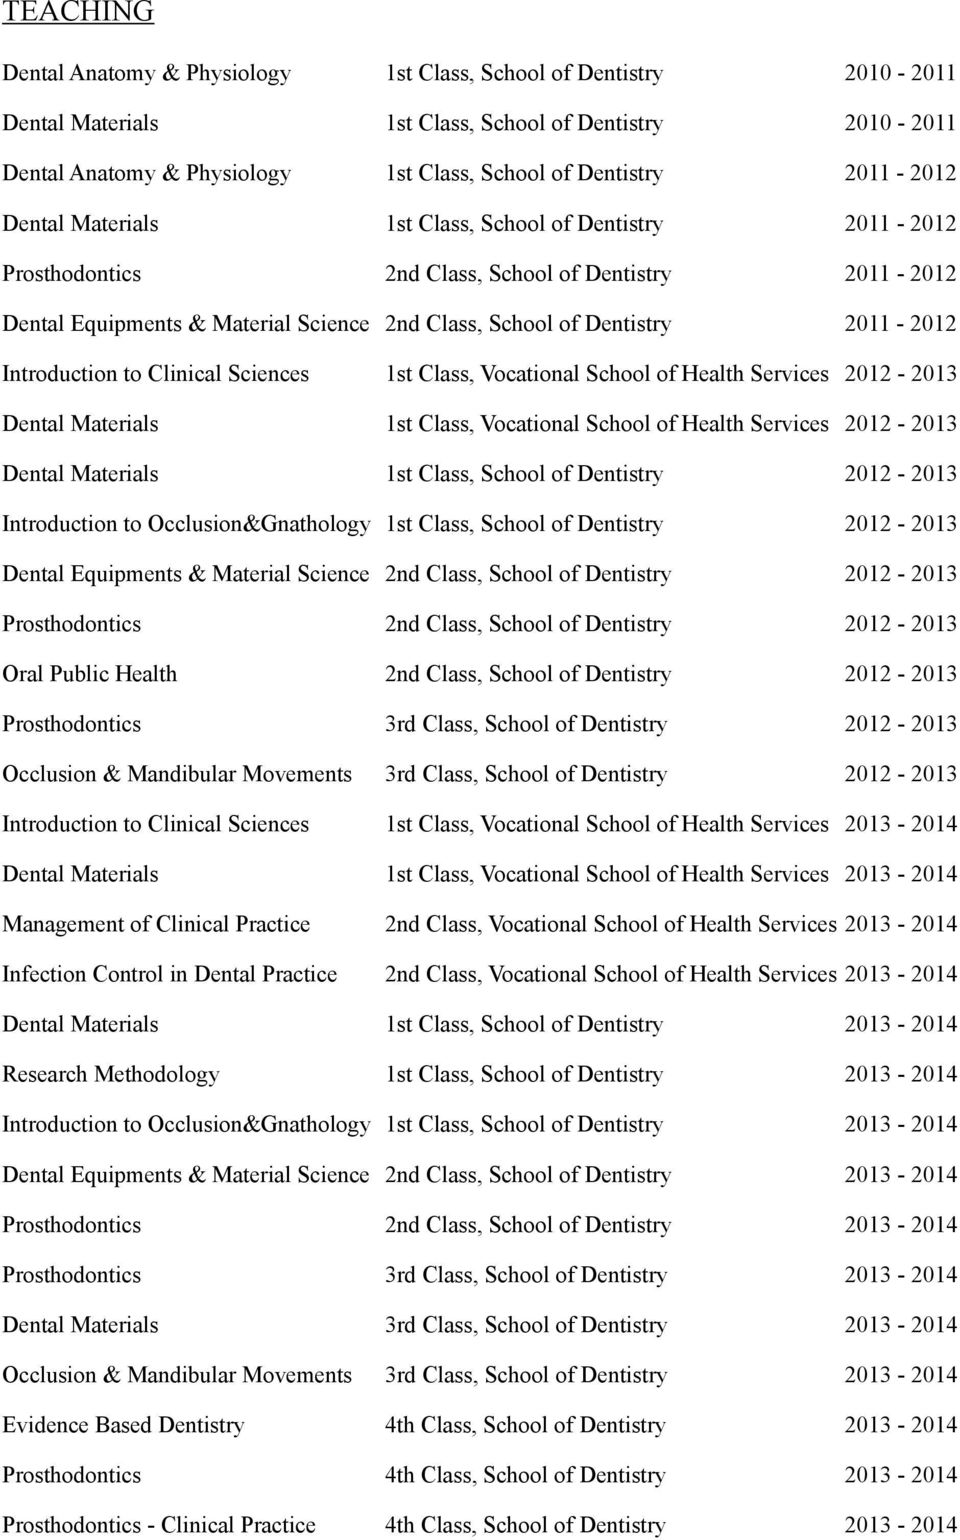 2011-2012 Introduction to Clinical Sciences 1st Class, Vocational School of Health Services 2012-2013 Dental Materials 1st Class, Vocational School of Health Services 2012-2013 Dental Materials 1st